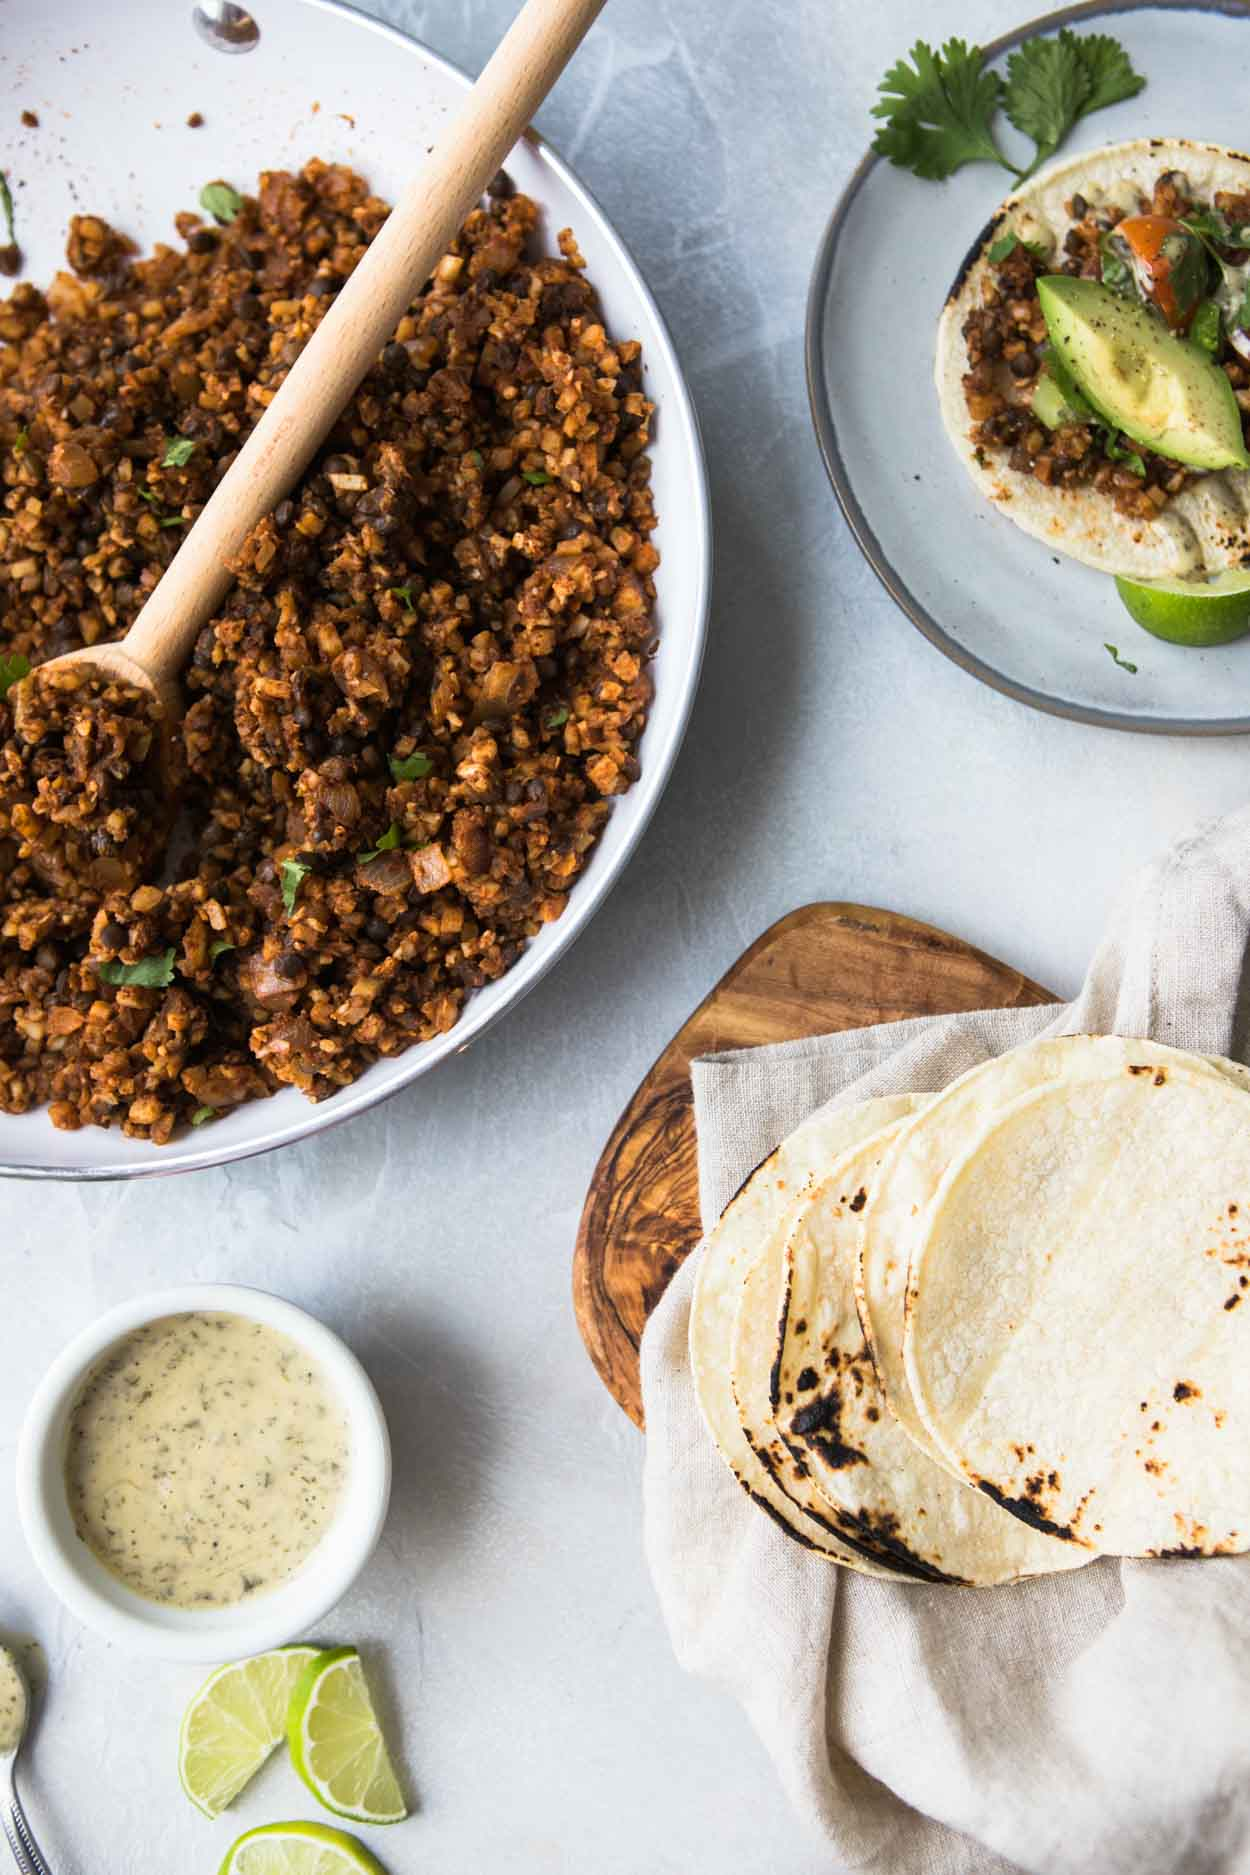 Cauliflower rice and lentil tacos in a white pan against a white board